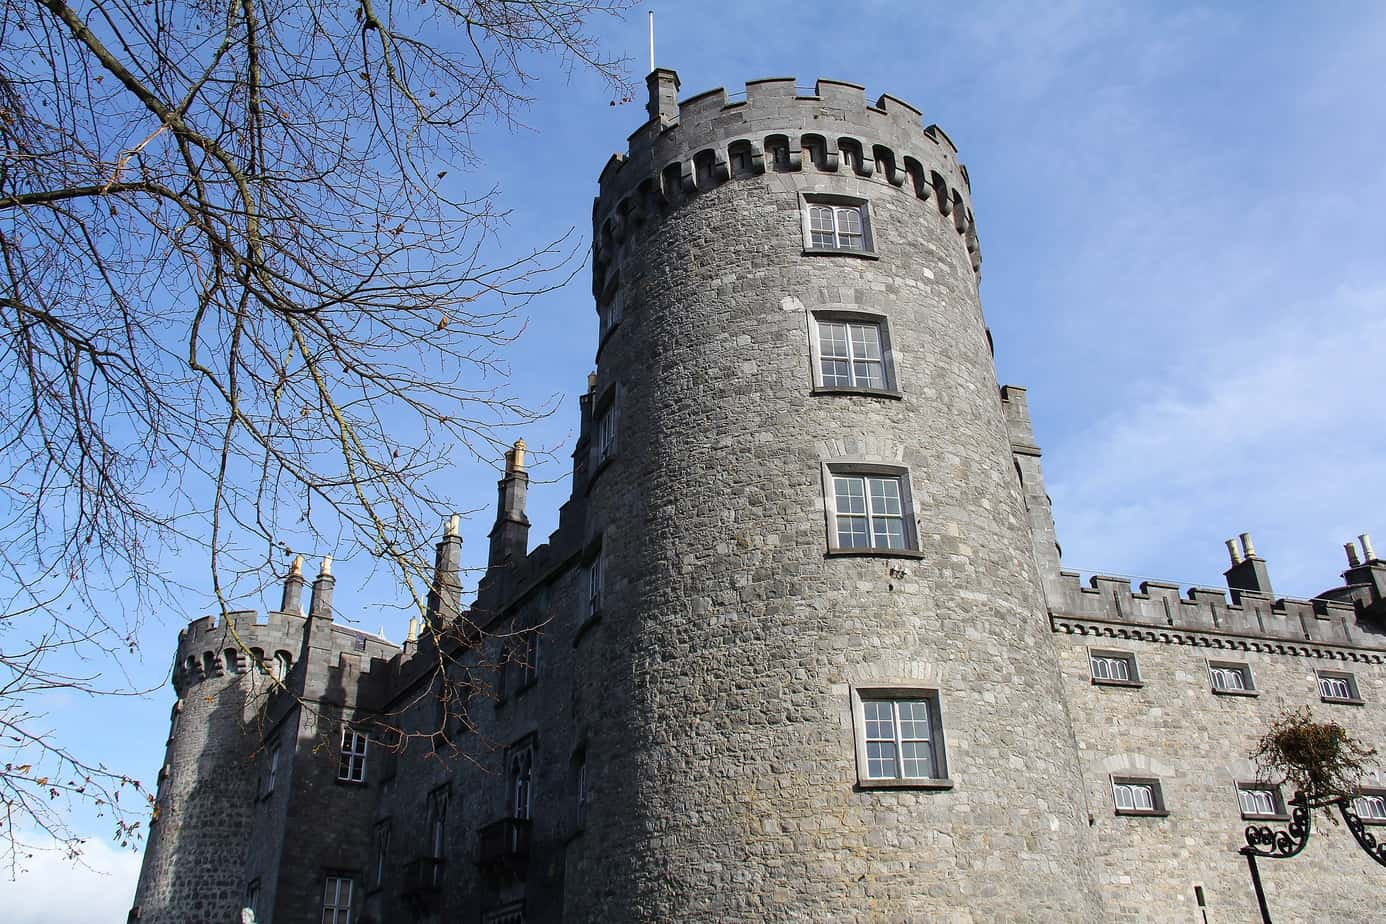 The great Kilkenny Castle